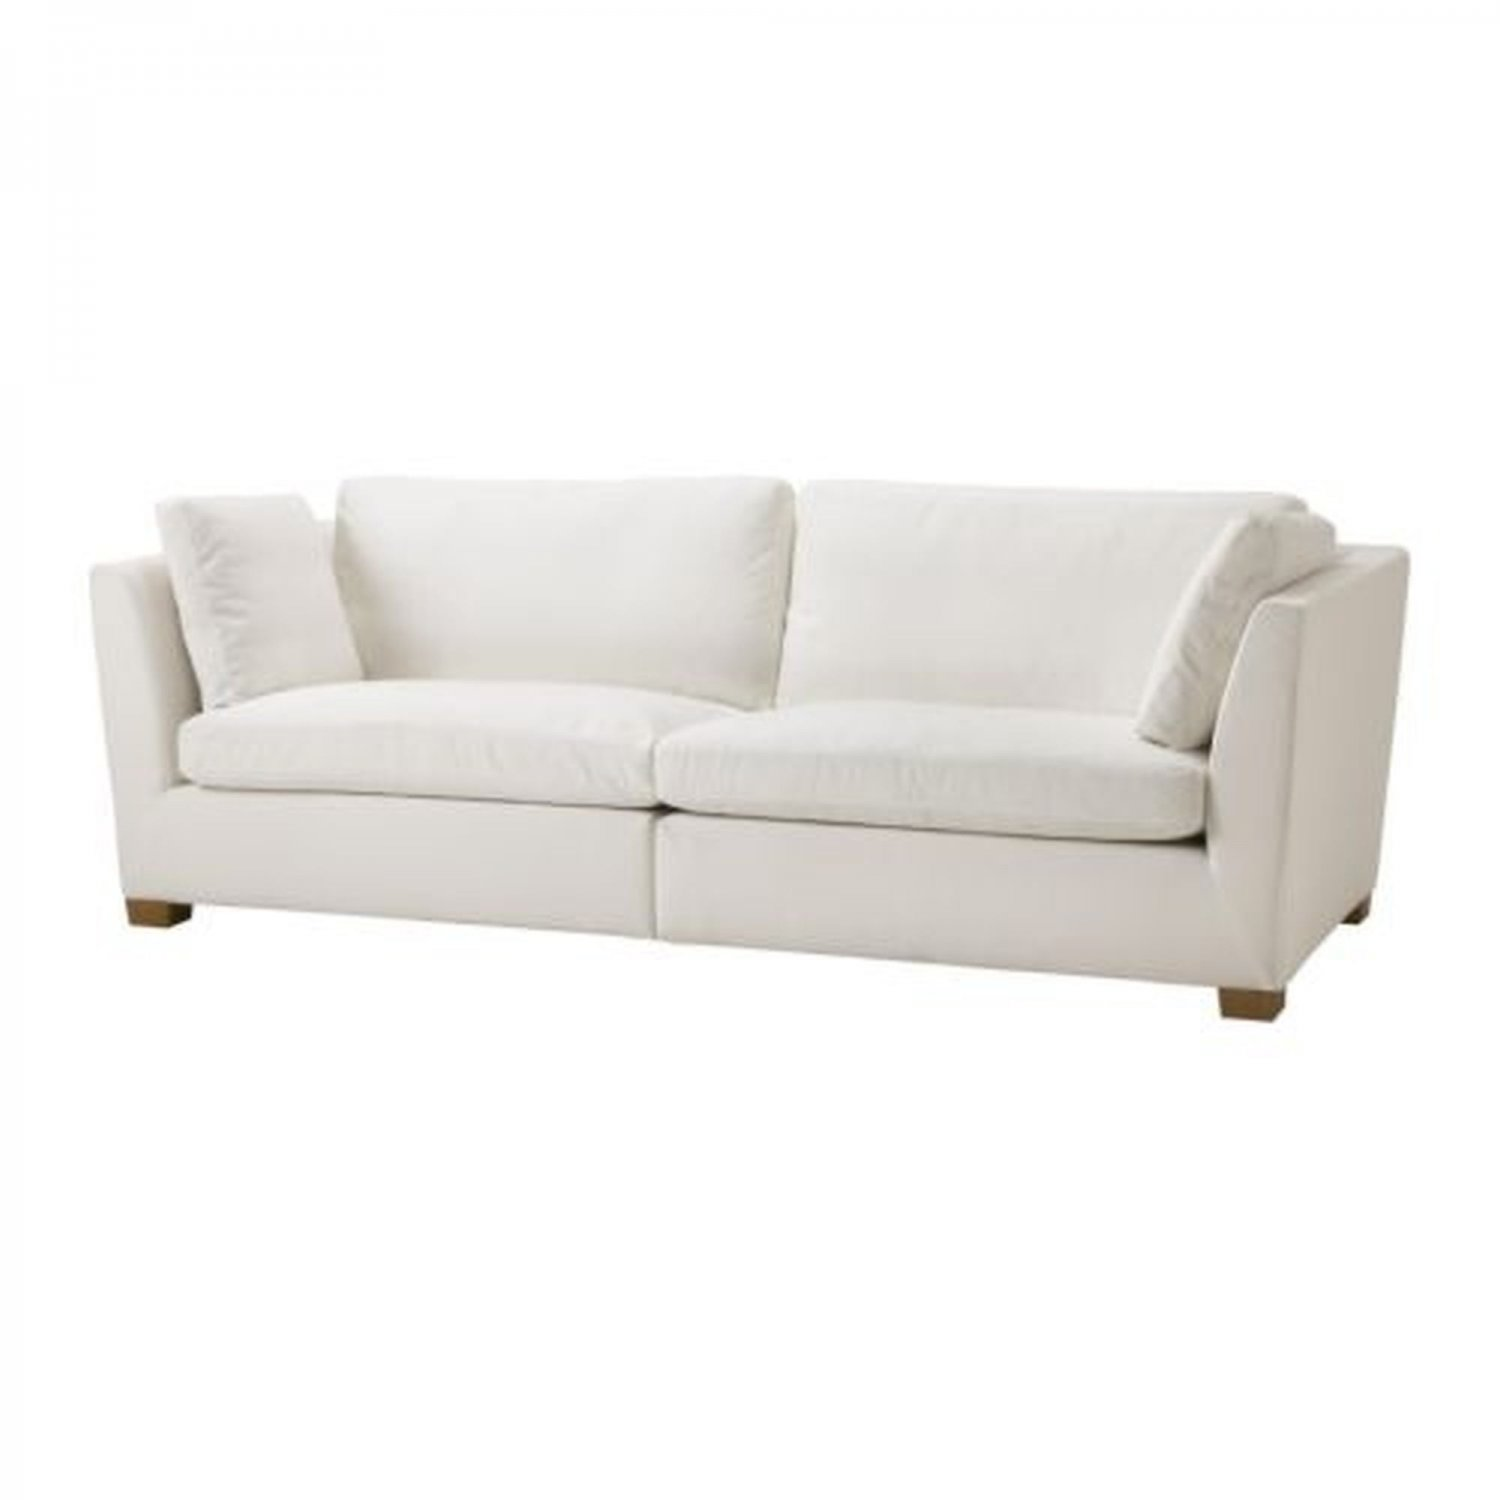 ikea sectional slipcover with Ikea Stockholm 35 Seat Sofa Slipcover on Small Footstools Ikea Cheap Ottoman Ikea additionally Ikea Karlstad Corner Sofa Slipcover furthermore Ikea Ektorp 22 Corner Sofa Cover further Ikea Kivik Sofa Slipcover Cover also Ikea Farlov Sofa Review Back To Basics.